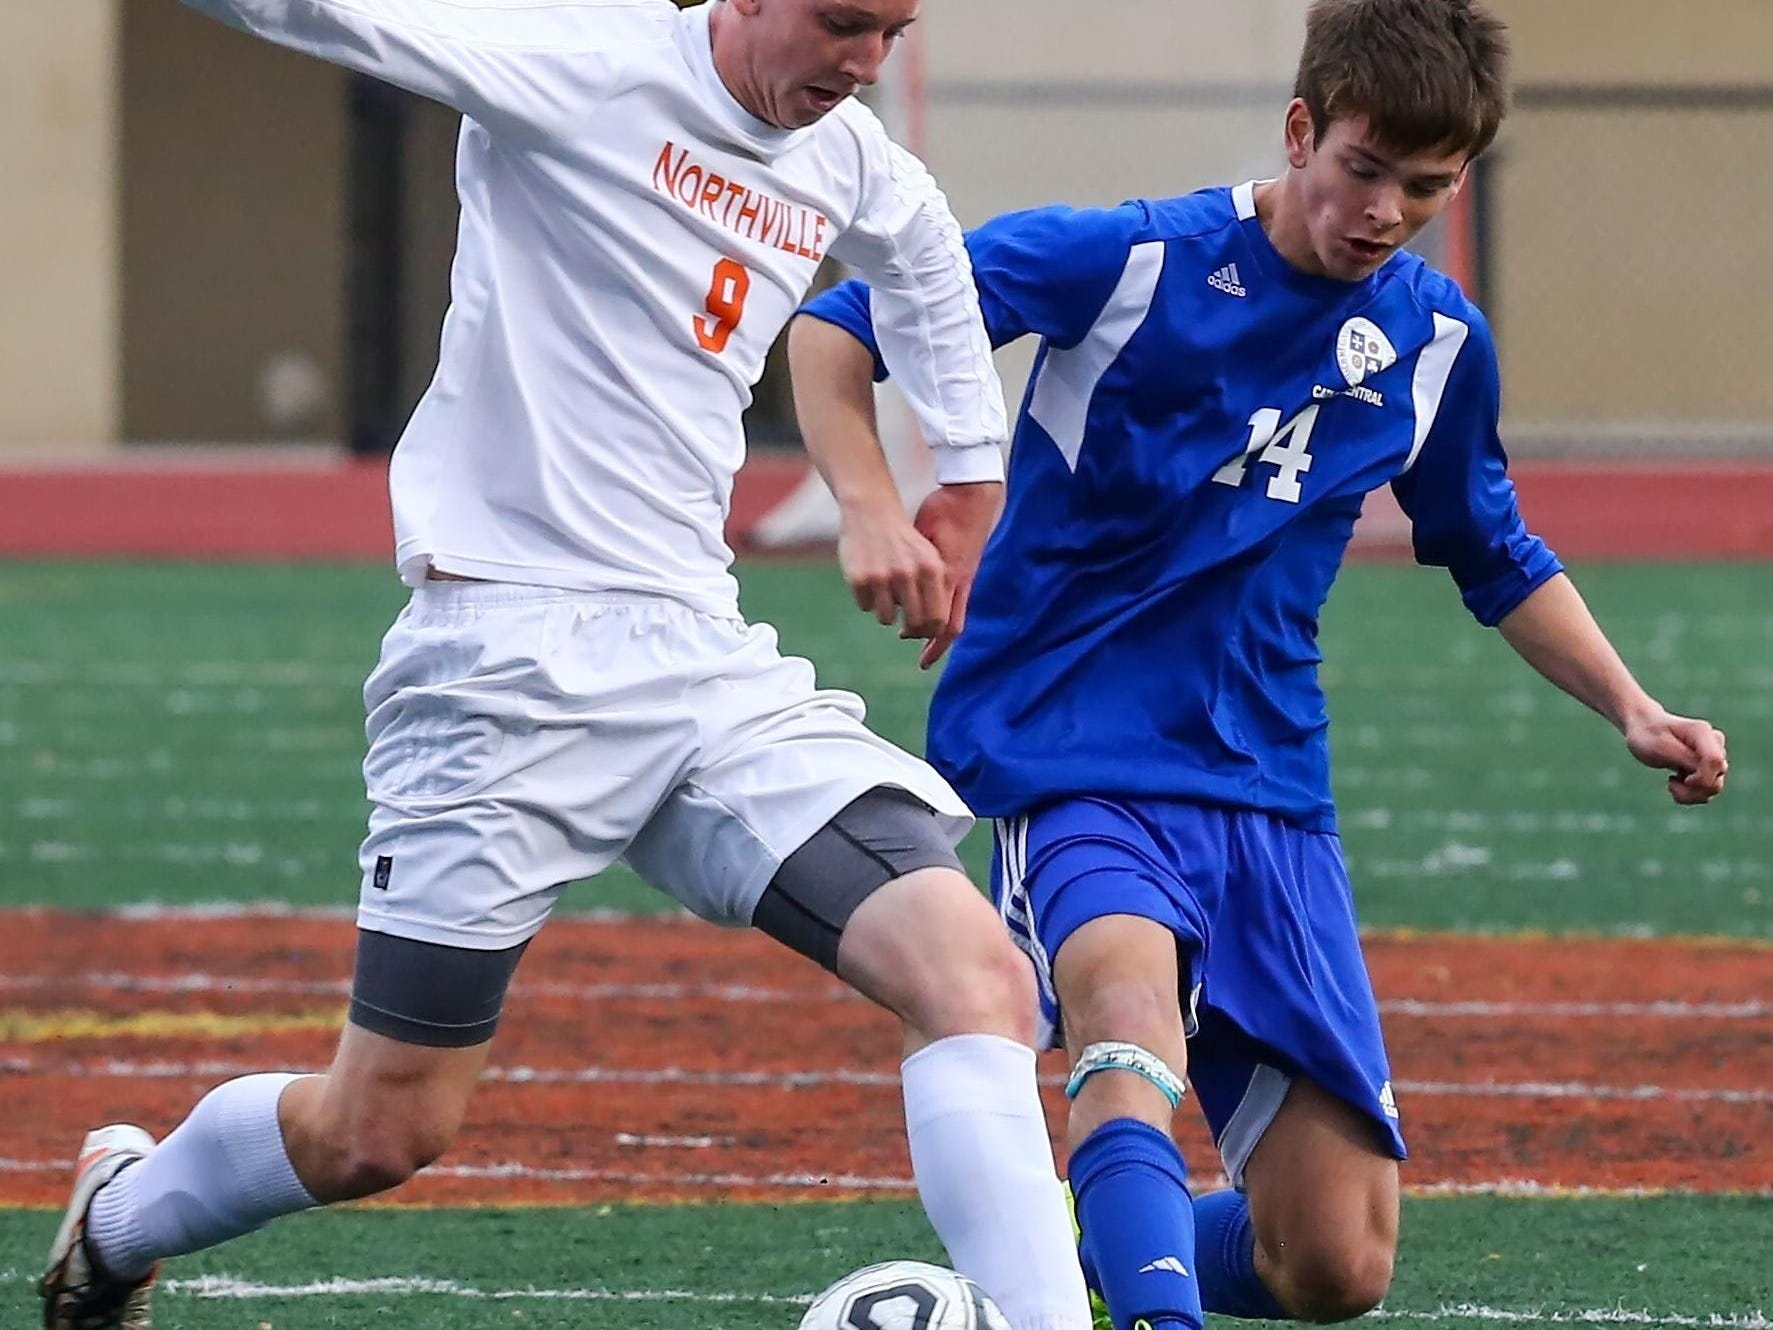 Northville defender Garret Weaver (left), taking on Catholic Central's Noah Walter, was named boys soccer All-Area Player of the Year.